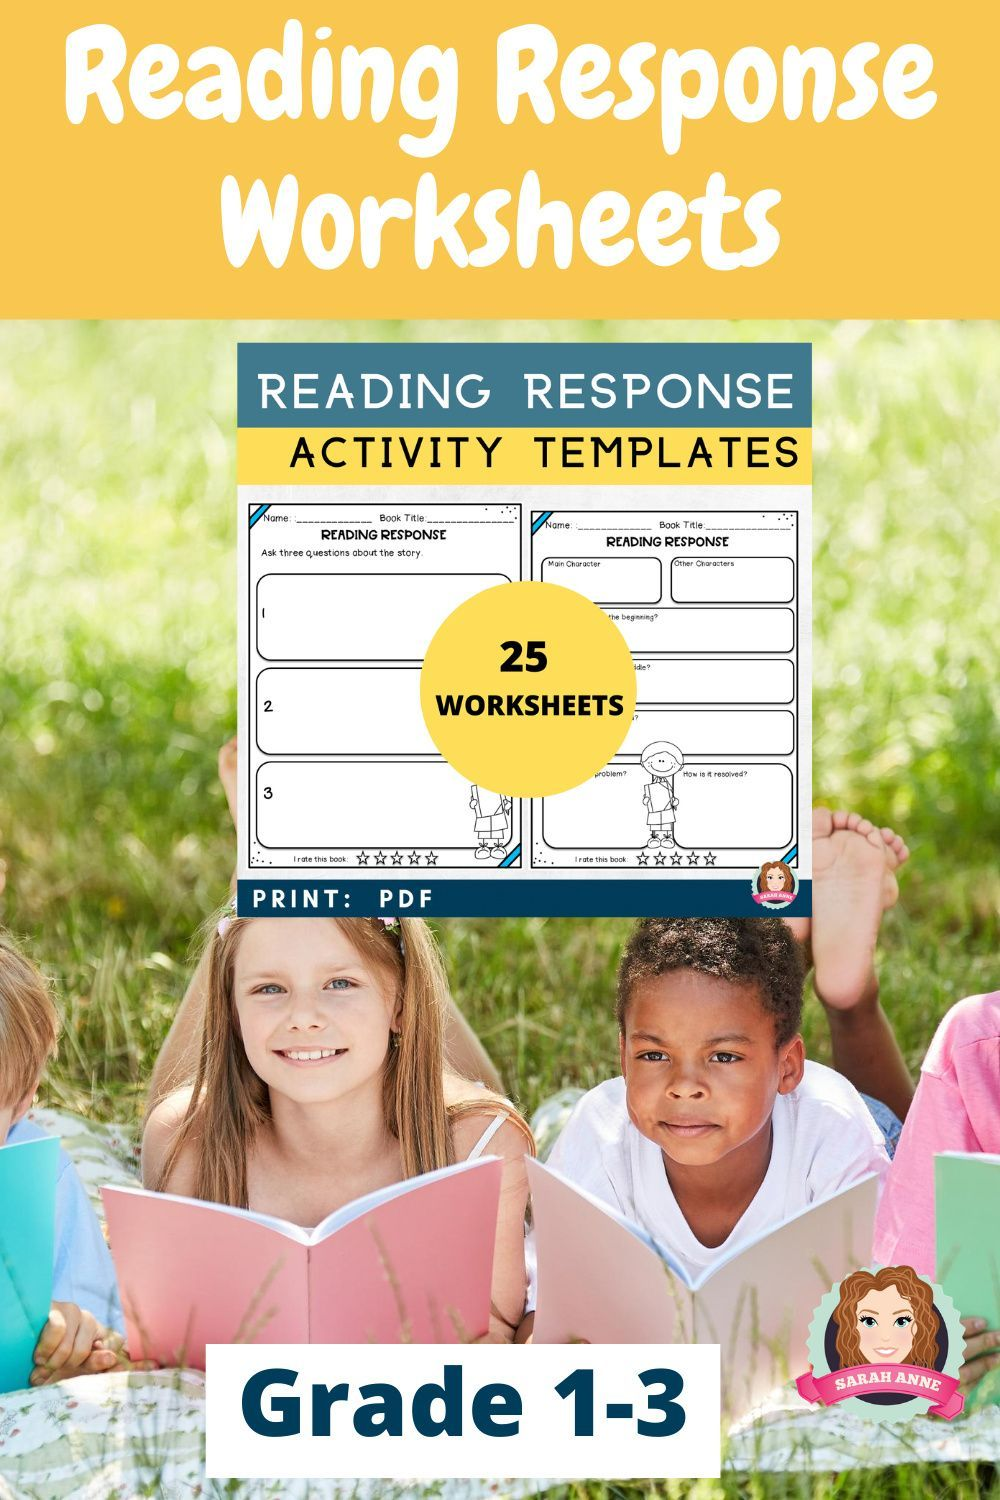 Reading Response Worksheets Distance Learning And Listening Centers In 2021 Reading Response Worksheets Reading Response Reading Response Activities [ 1500 x 1000 Pixel ]